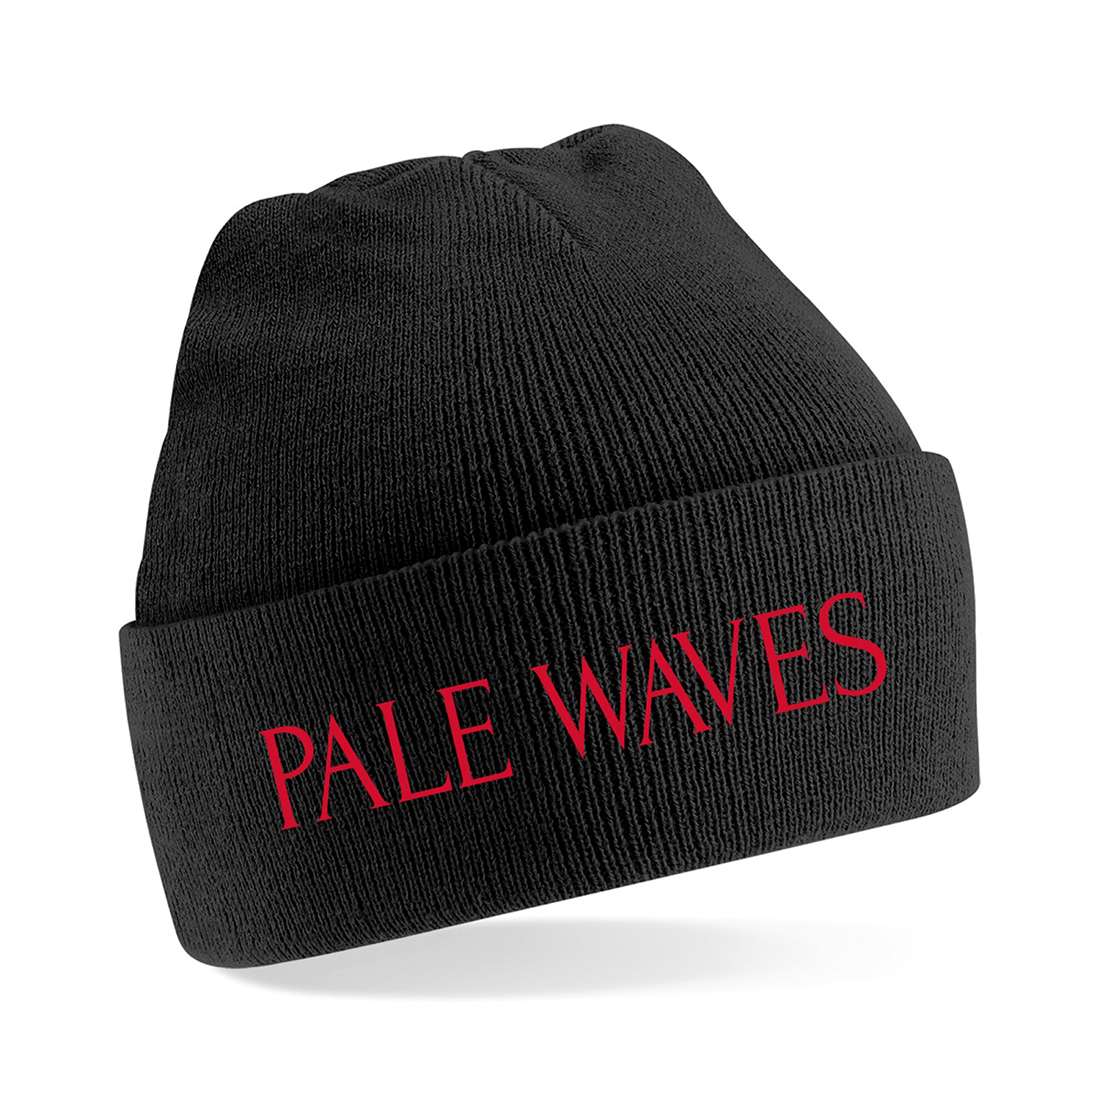 Pale Waves: Embroidered Logo Beanie